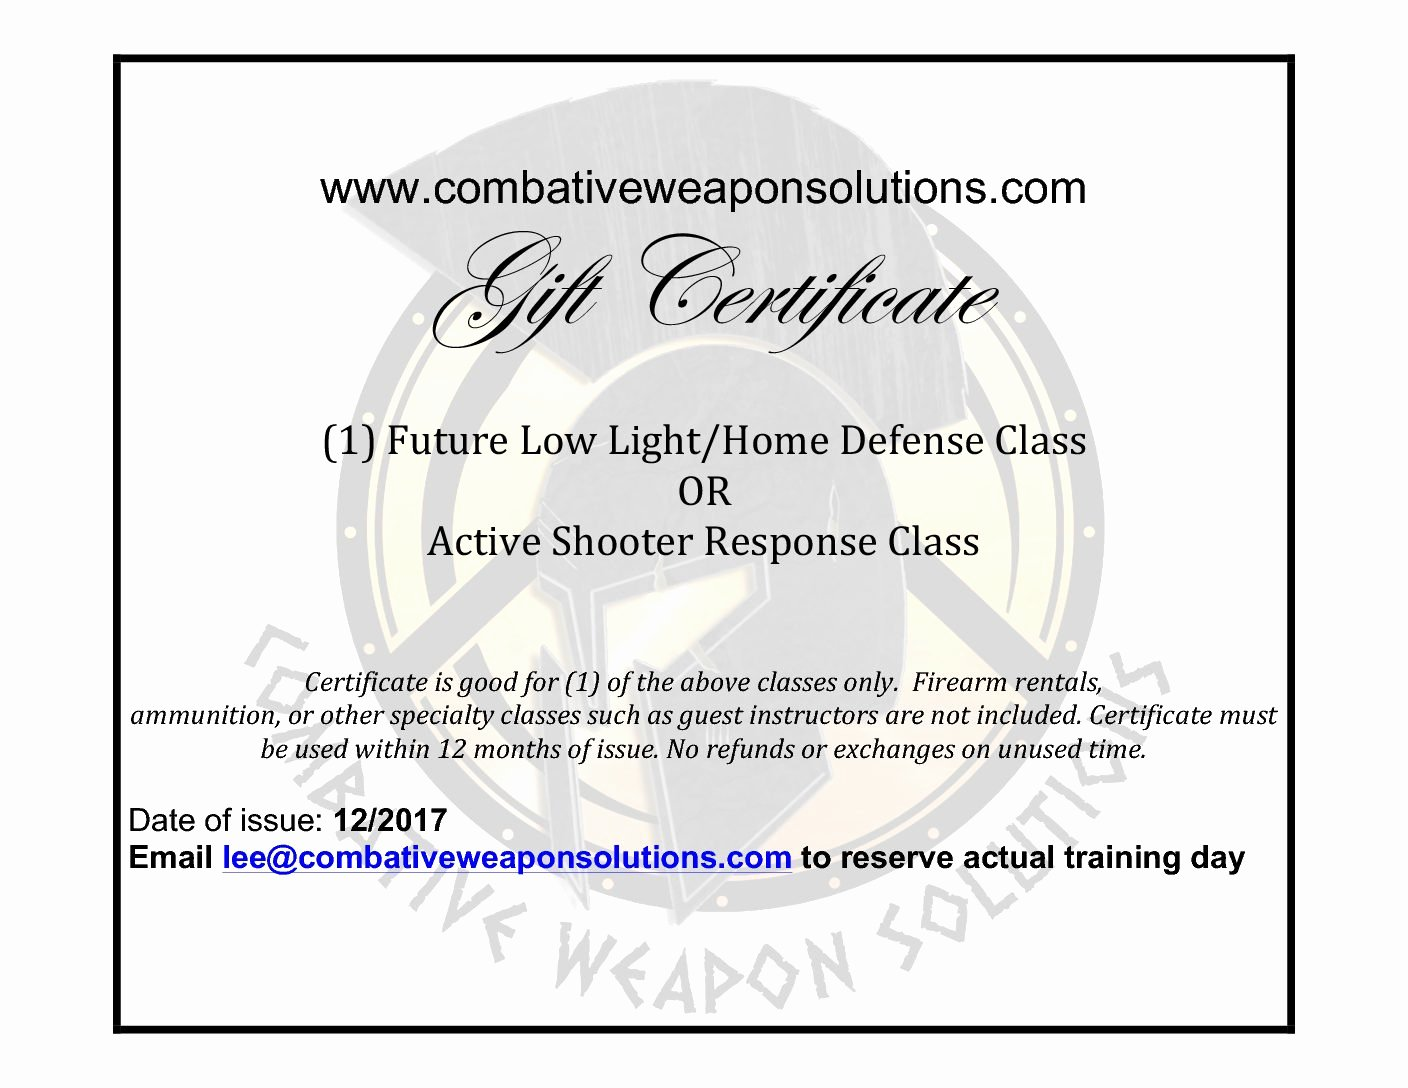 Firearms Training Certificate Template Awesome Gift Certificate asr Ll Home Defense